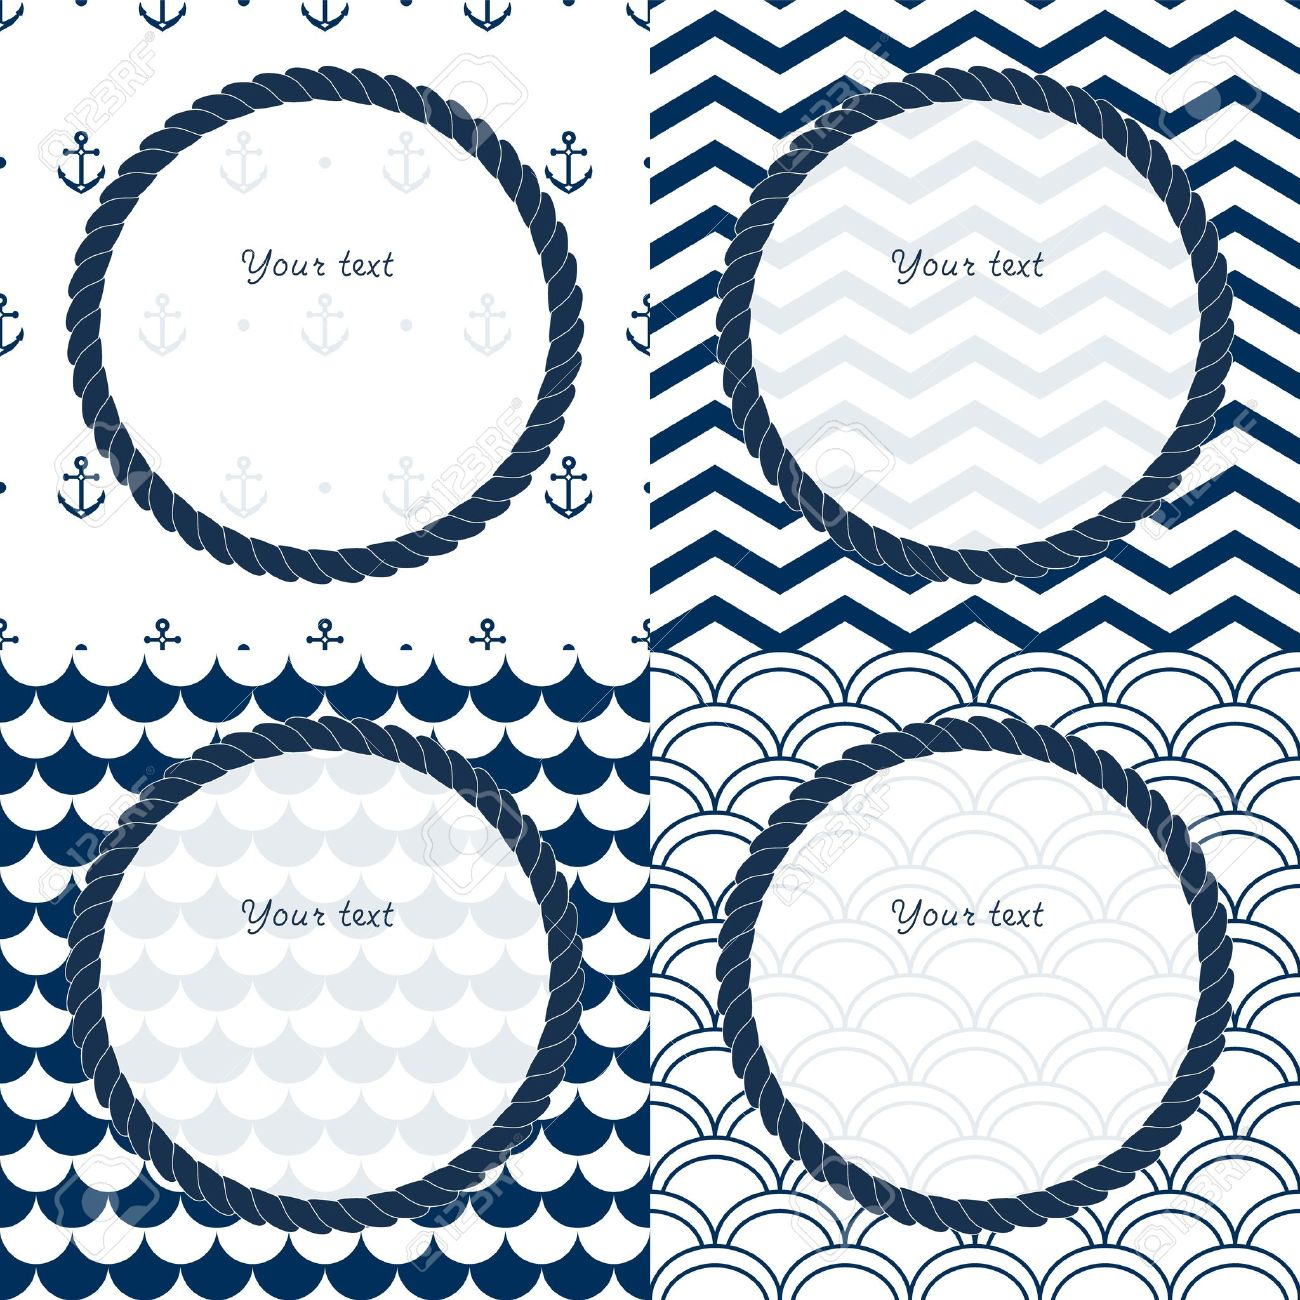 navy blue and white travel round frames set on chevron scalloped and anchor patterned backgrounds